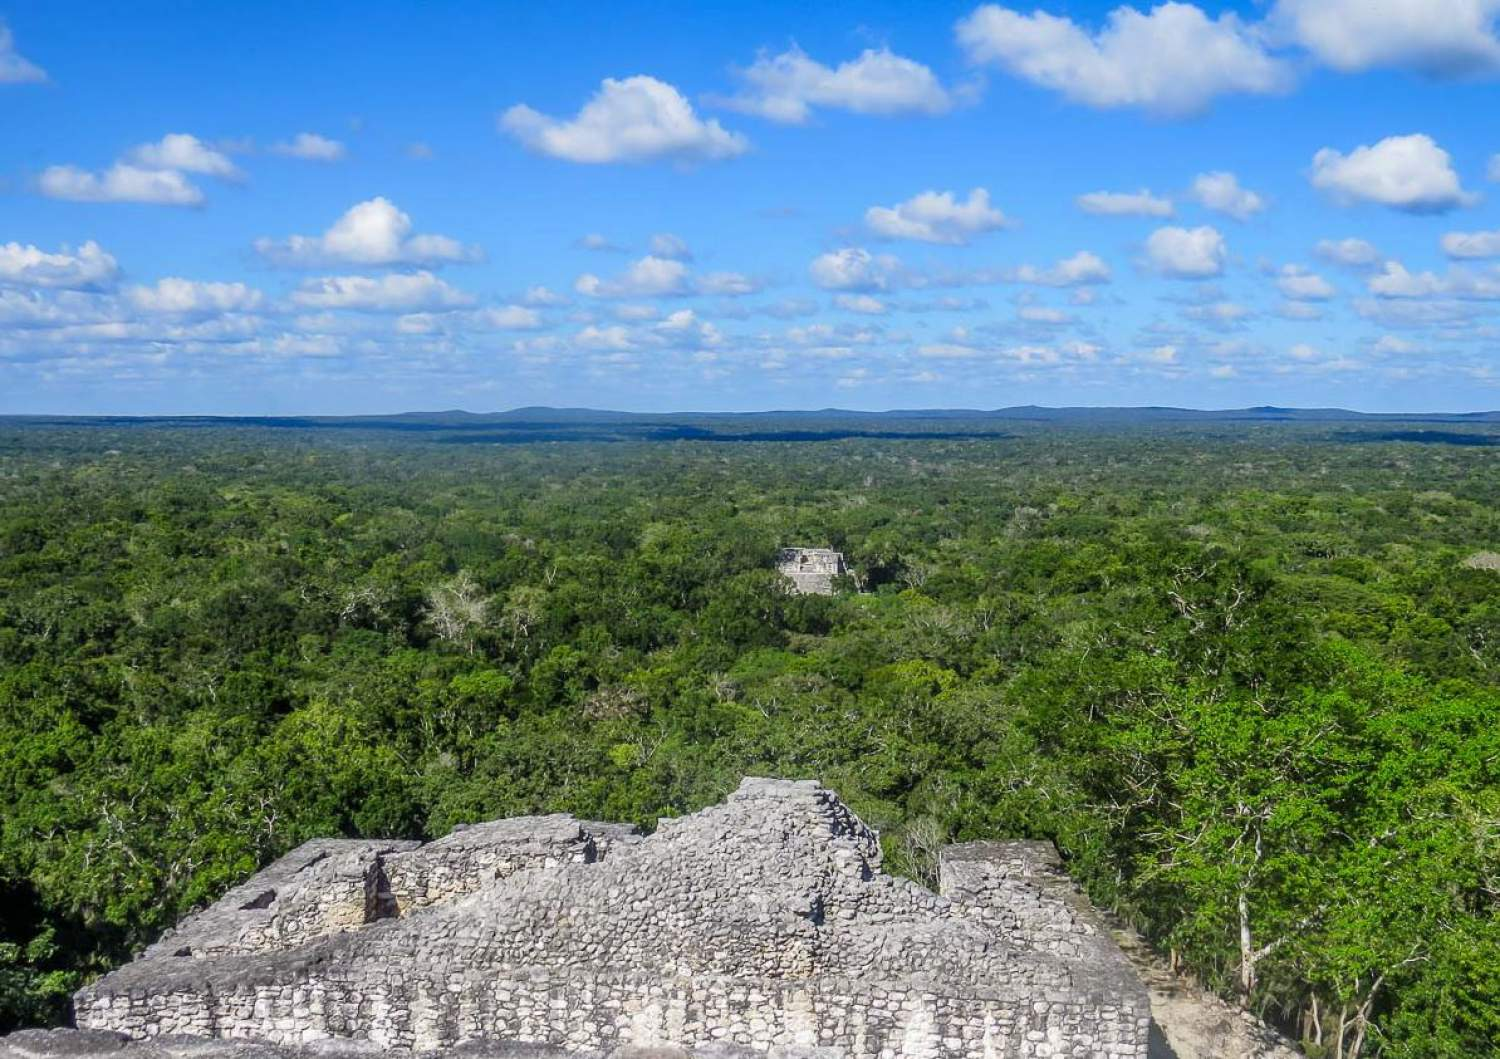 View from the top Mayan temple of Calakmul